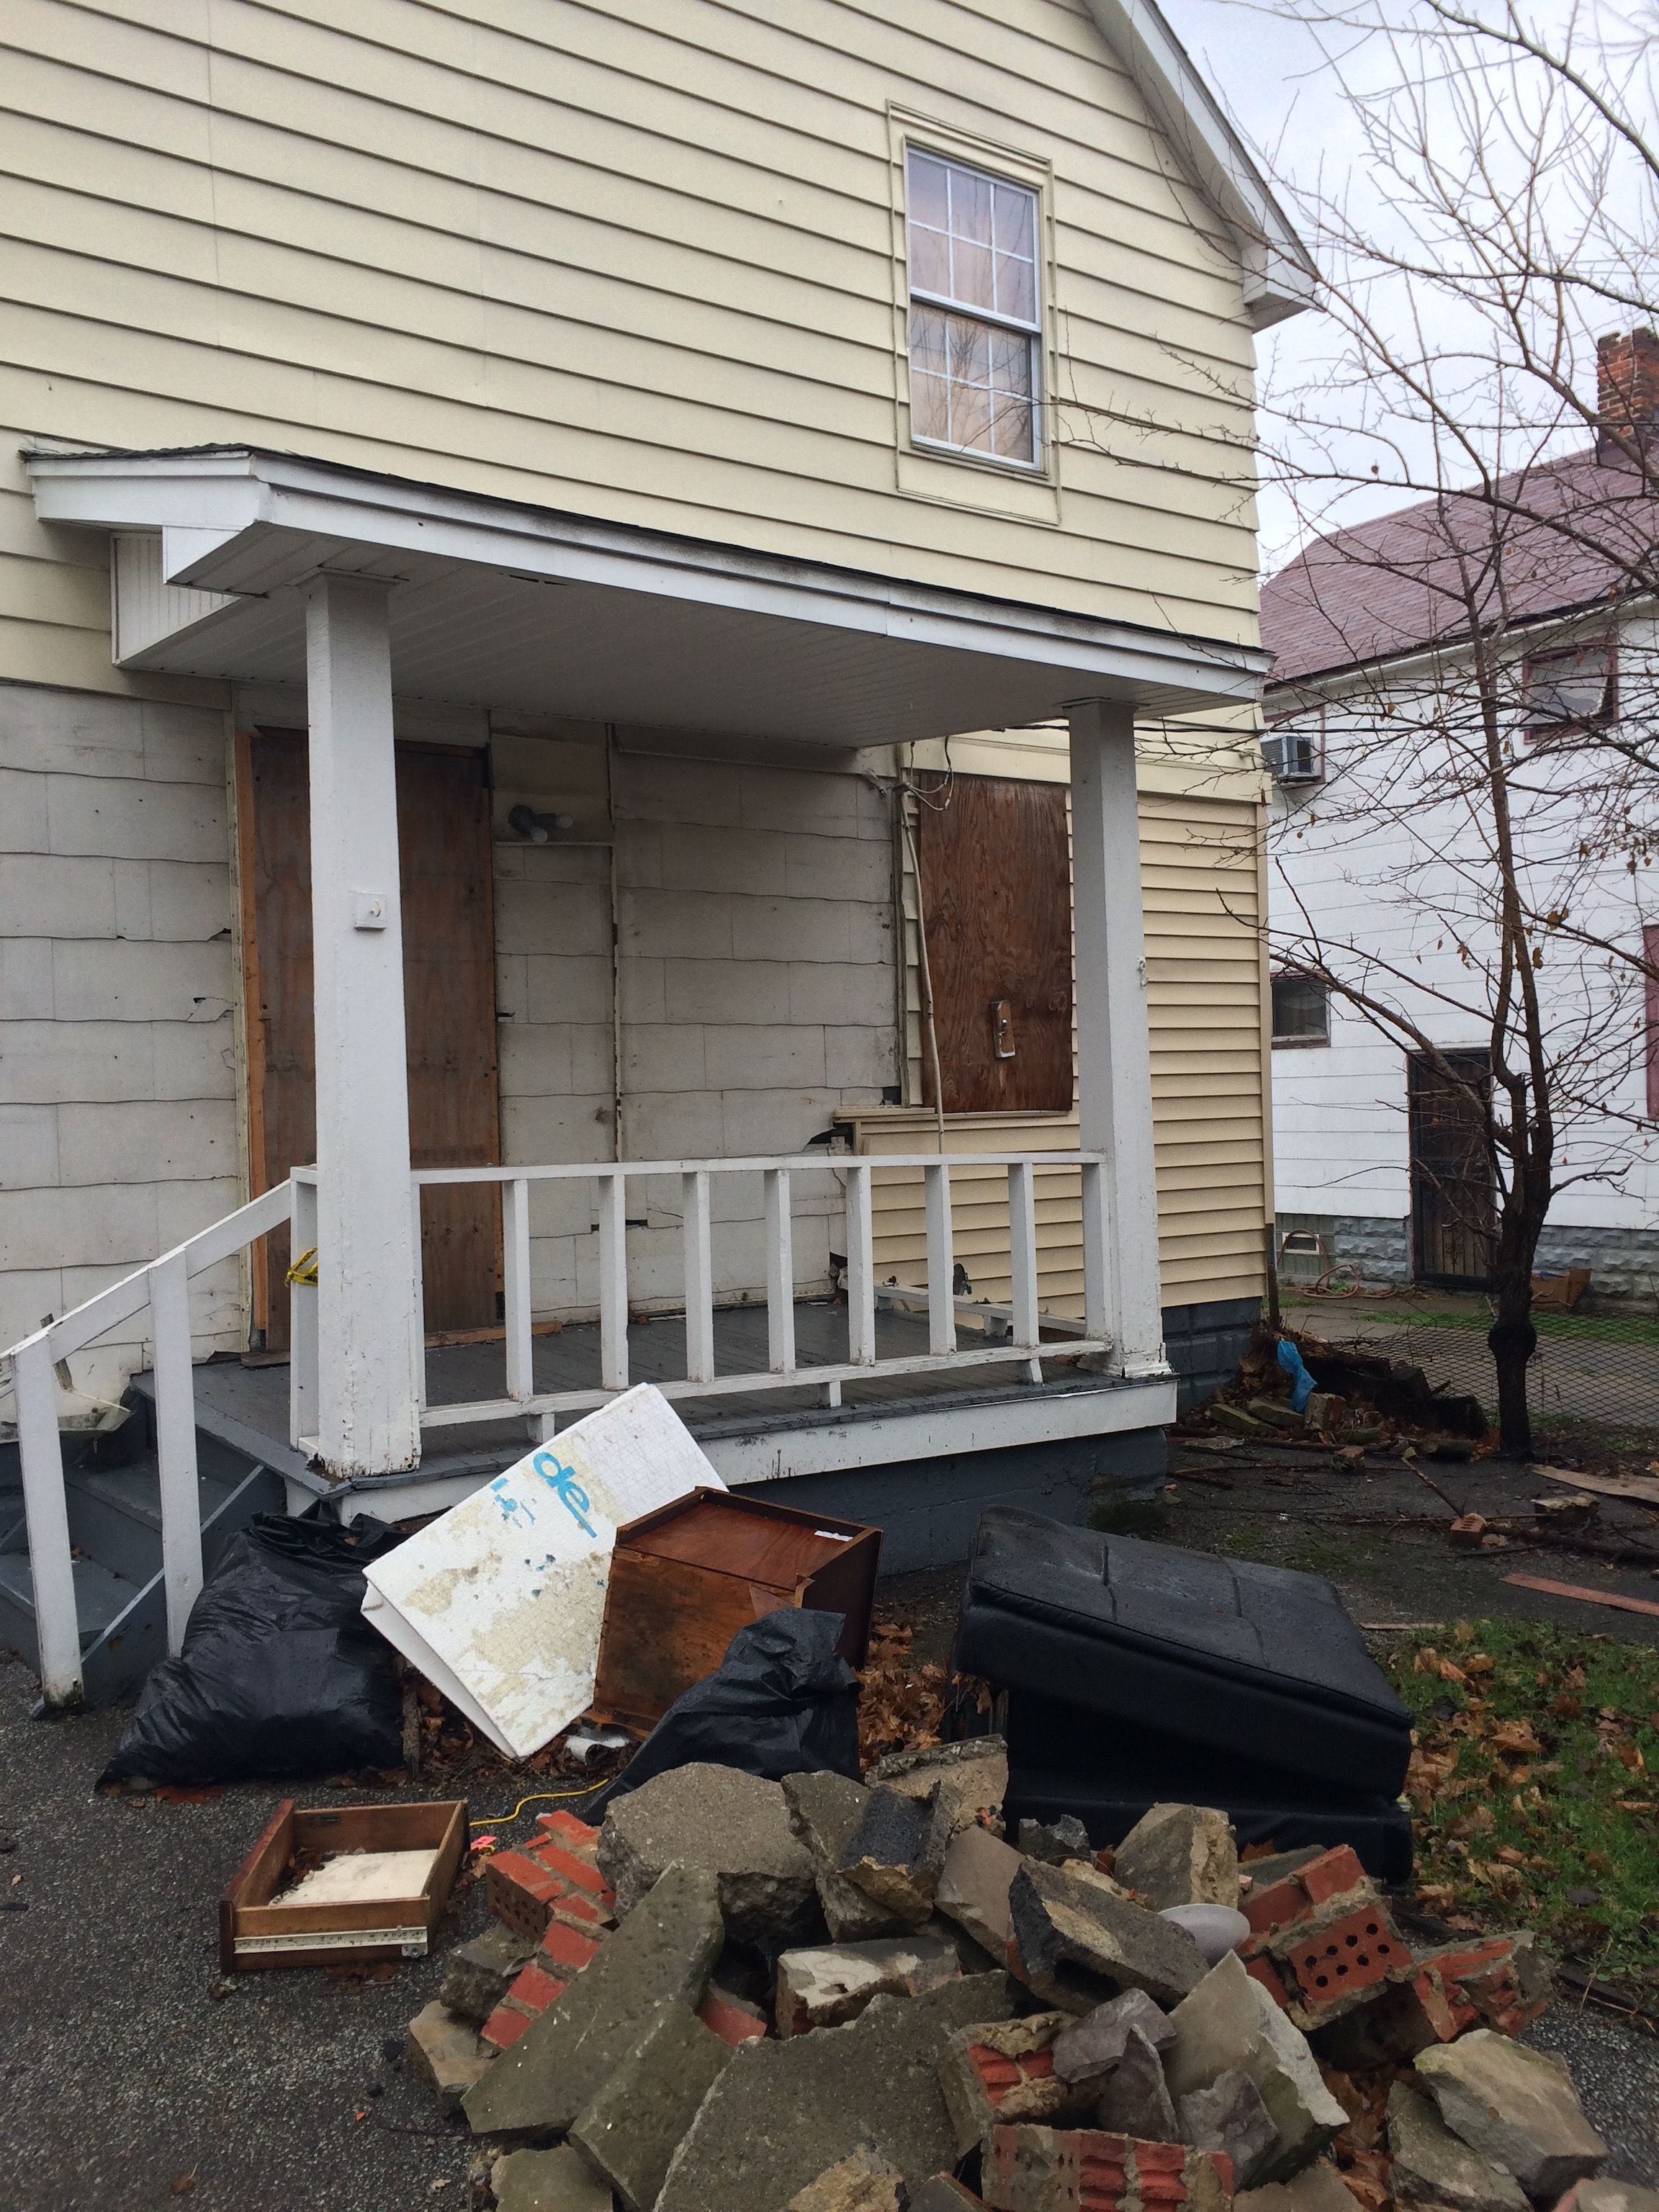 Cleveland Housing Network DESTROYING neighborhoods one house at a